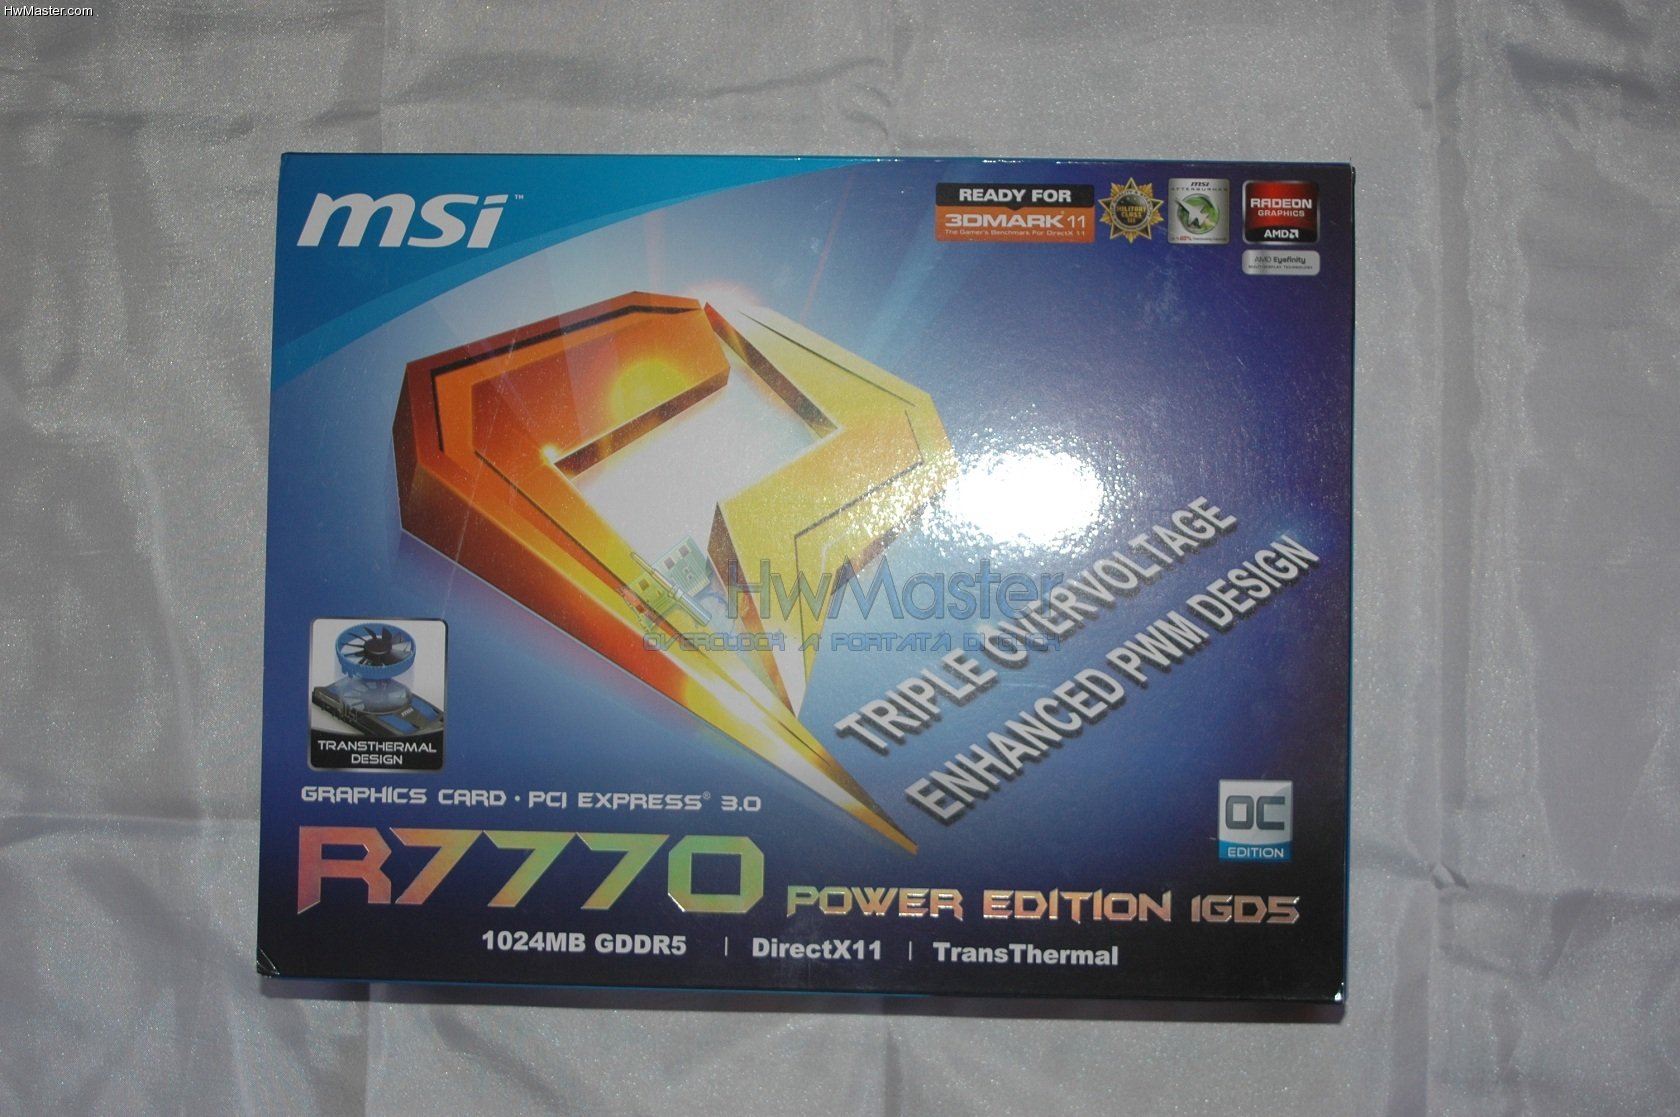 Recensione MSI R7770 Power Edition OC: Cape Verde XT alla prova